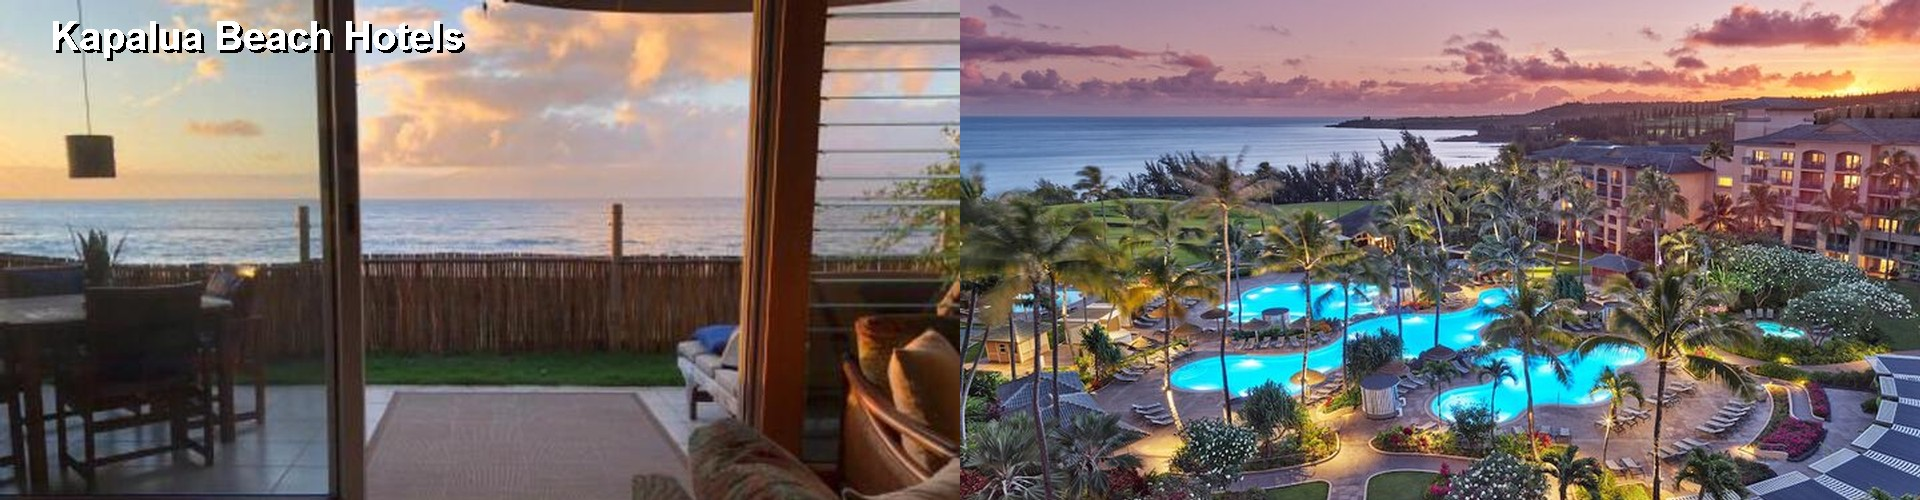 5 Best Hotels near Kapalua Beach